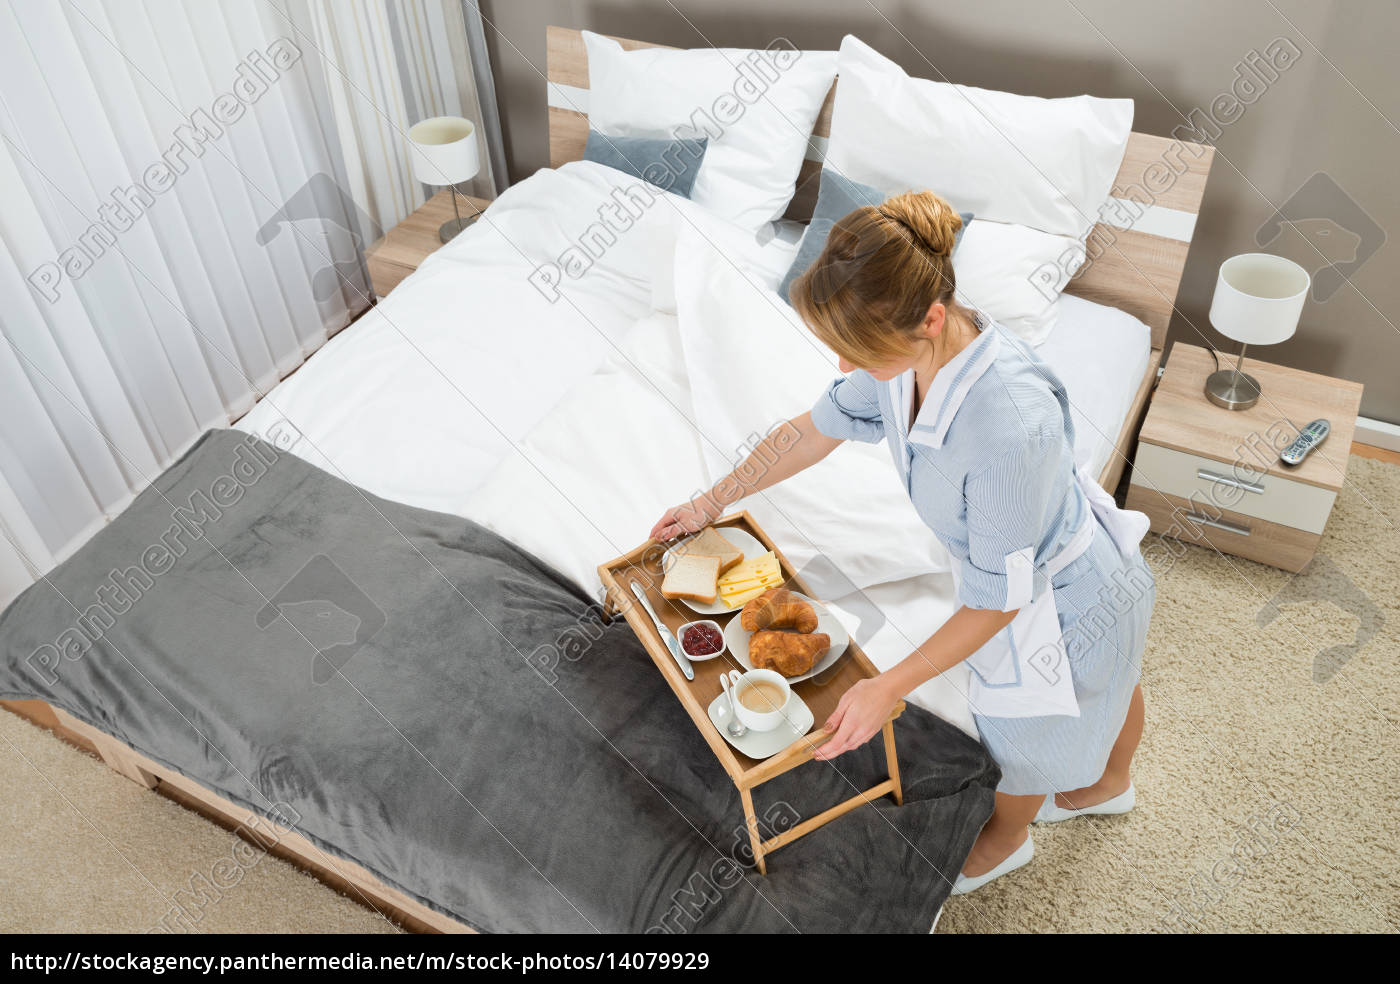 maid, with, breakfast, keeping, on, tray - 14079929